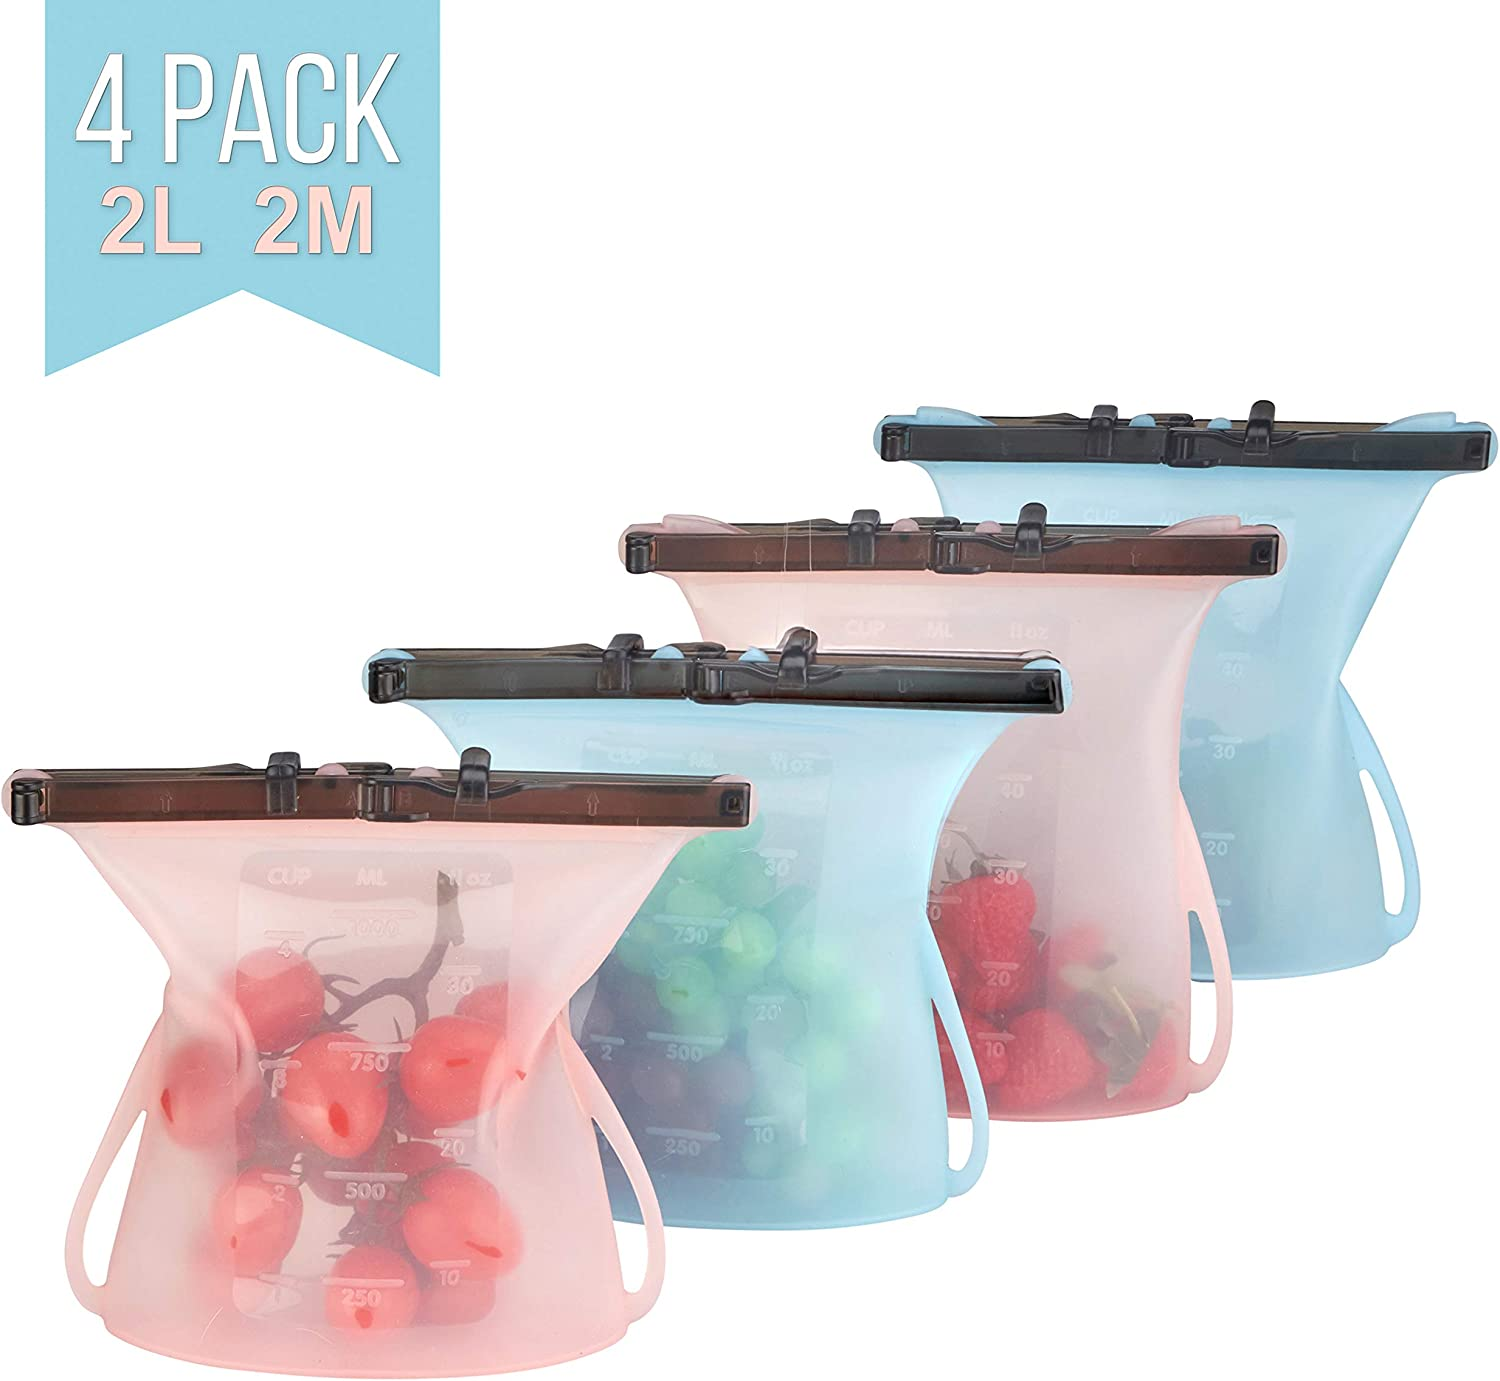 Silicone Food Storage Bags Reusable Leakproof Freezer Dishwasher Microwave Versatile Airtight Seal Clip Food Preservation Container for Sandwich Snack Lunch Fruit Milk Veggies Ziplock - 4 Pack